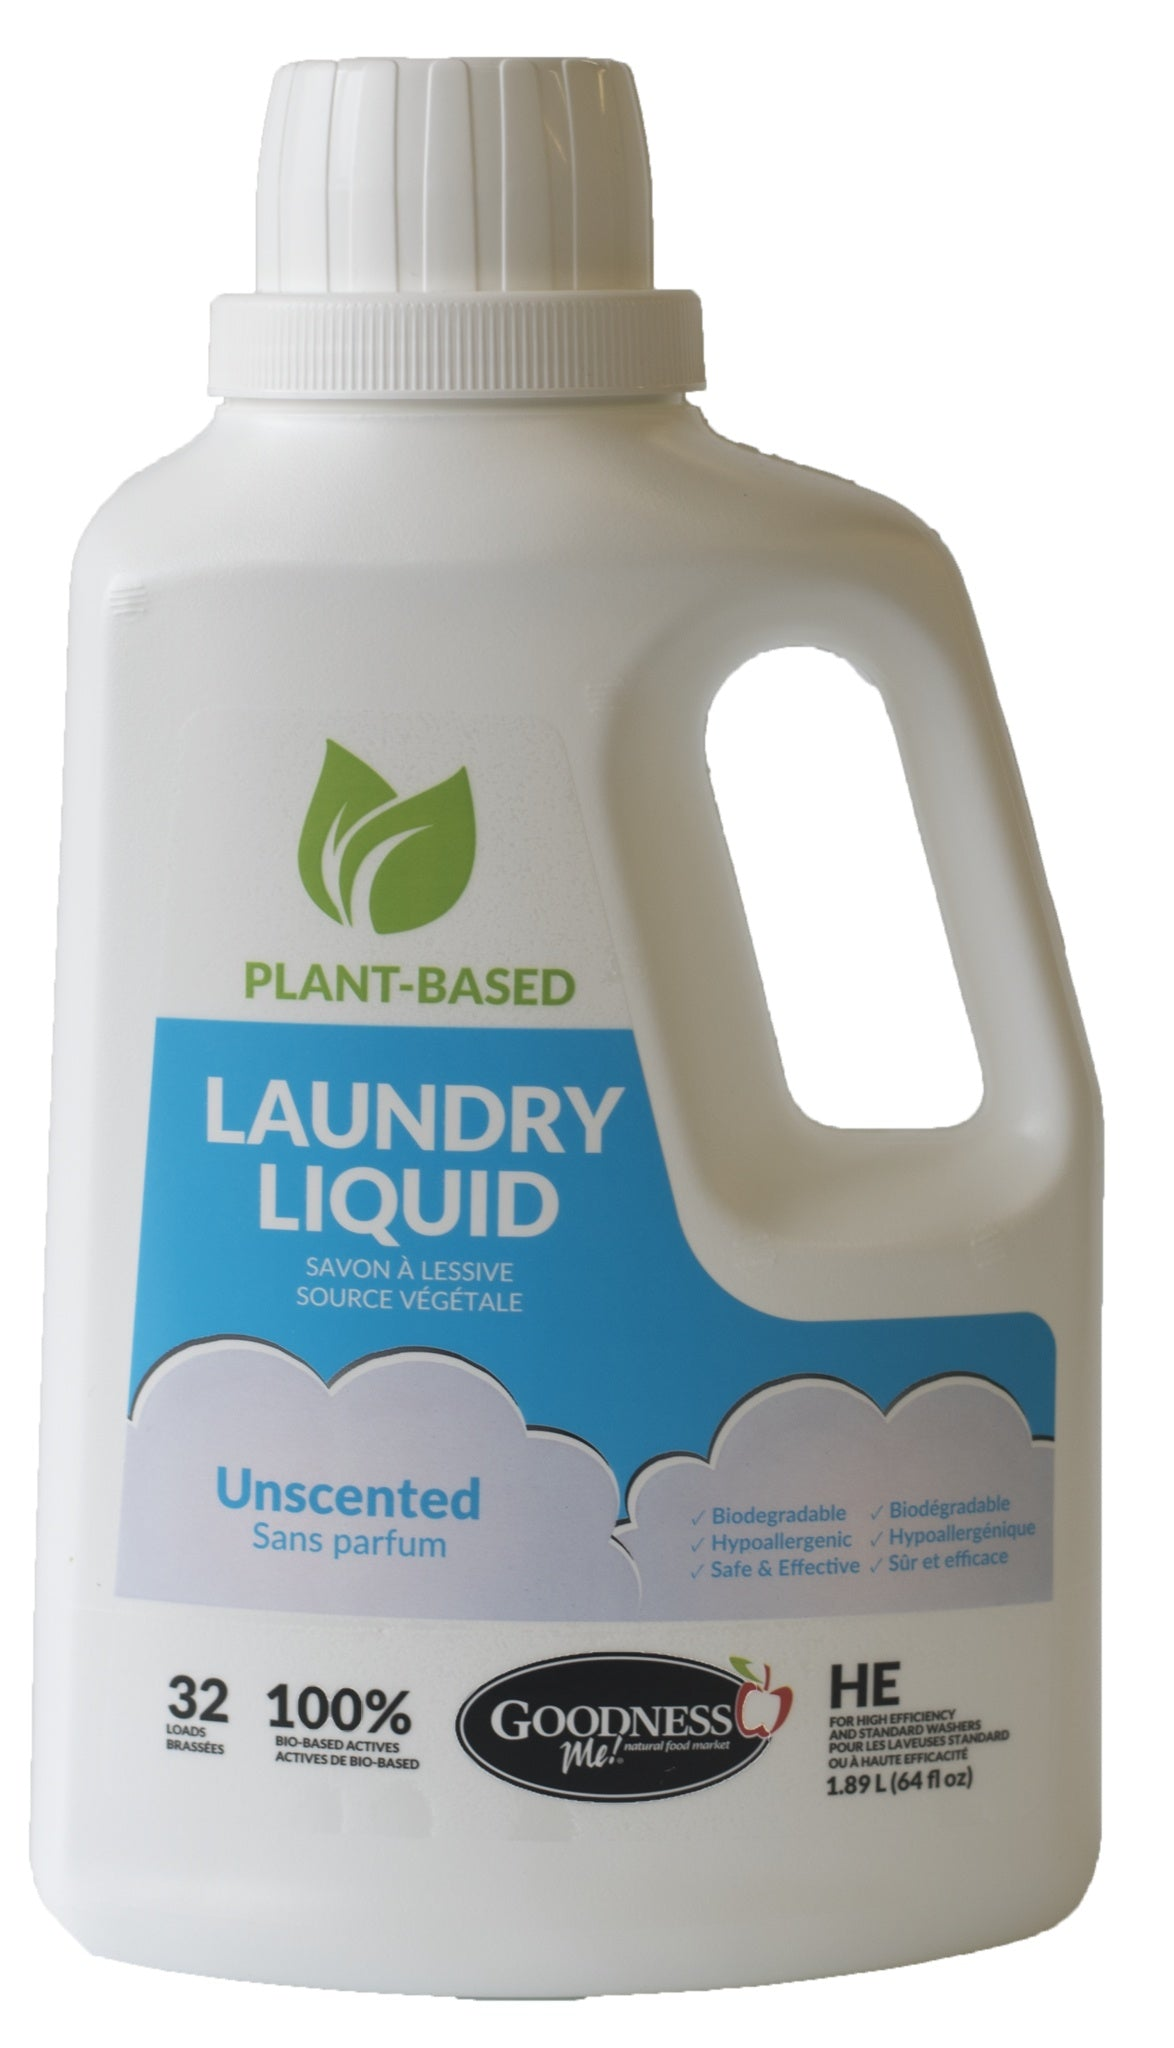 Healthy Lifestyles - Goodness Me! - Laundry Liquid Unscented - 1.89L